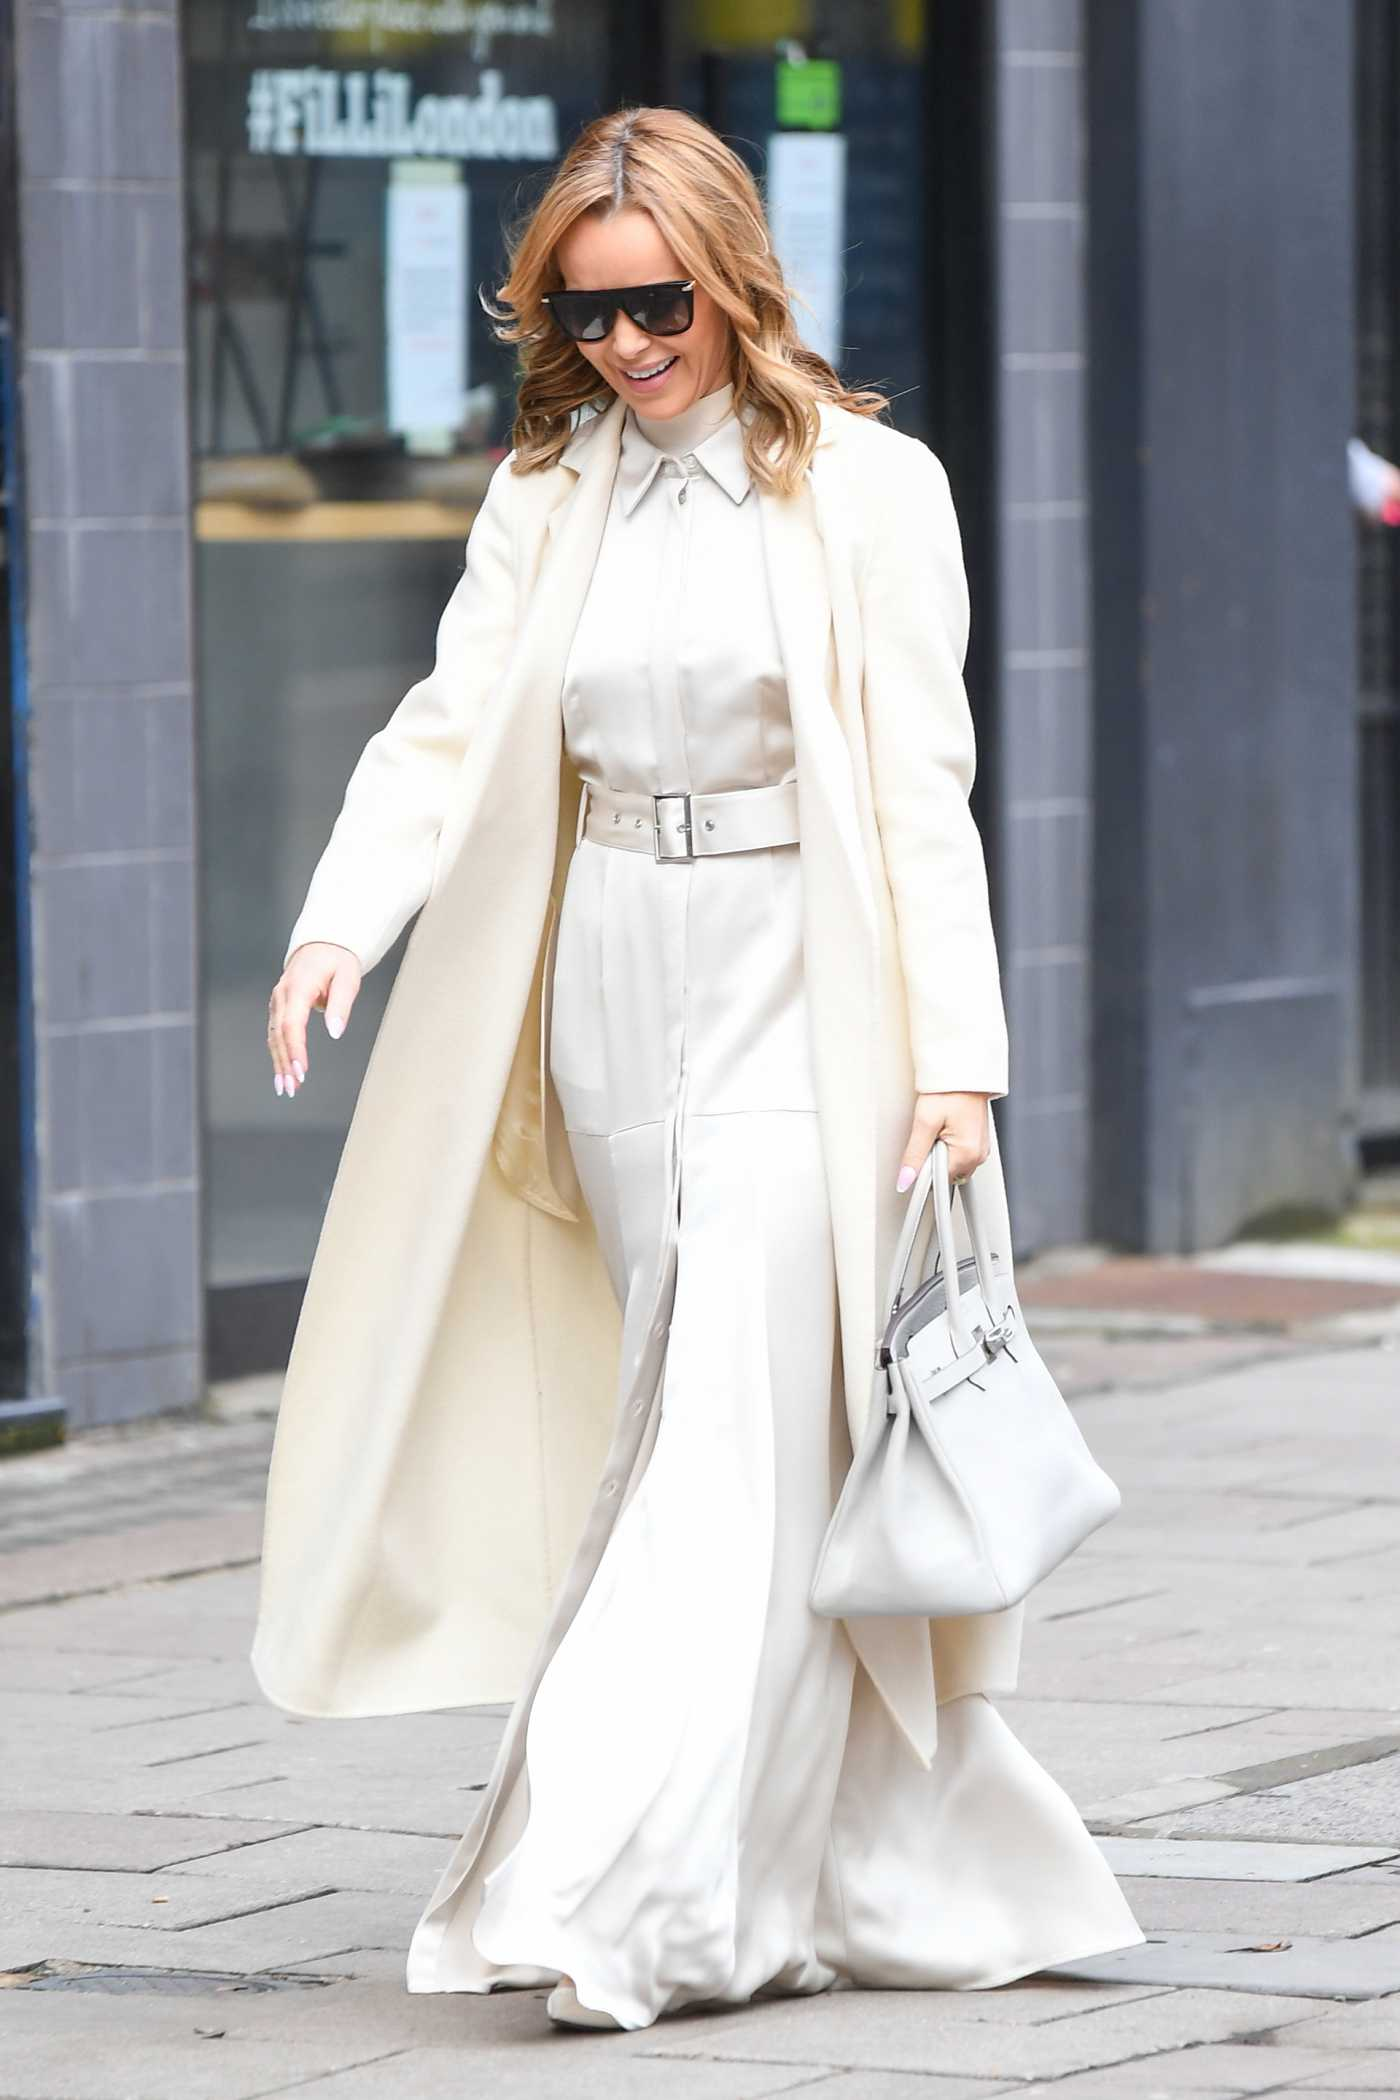 Amanda Holden in a White Coat Leaves the Global Studios in London 01/15/2021